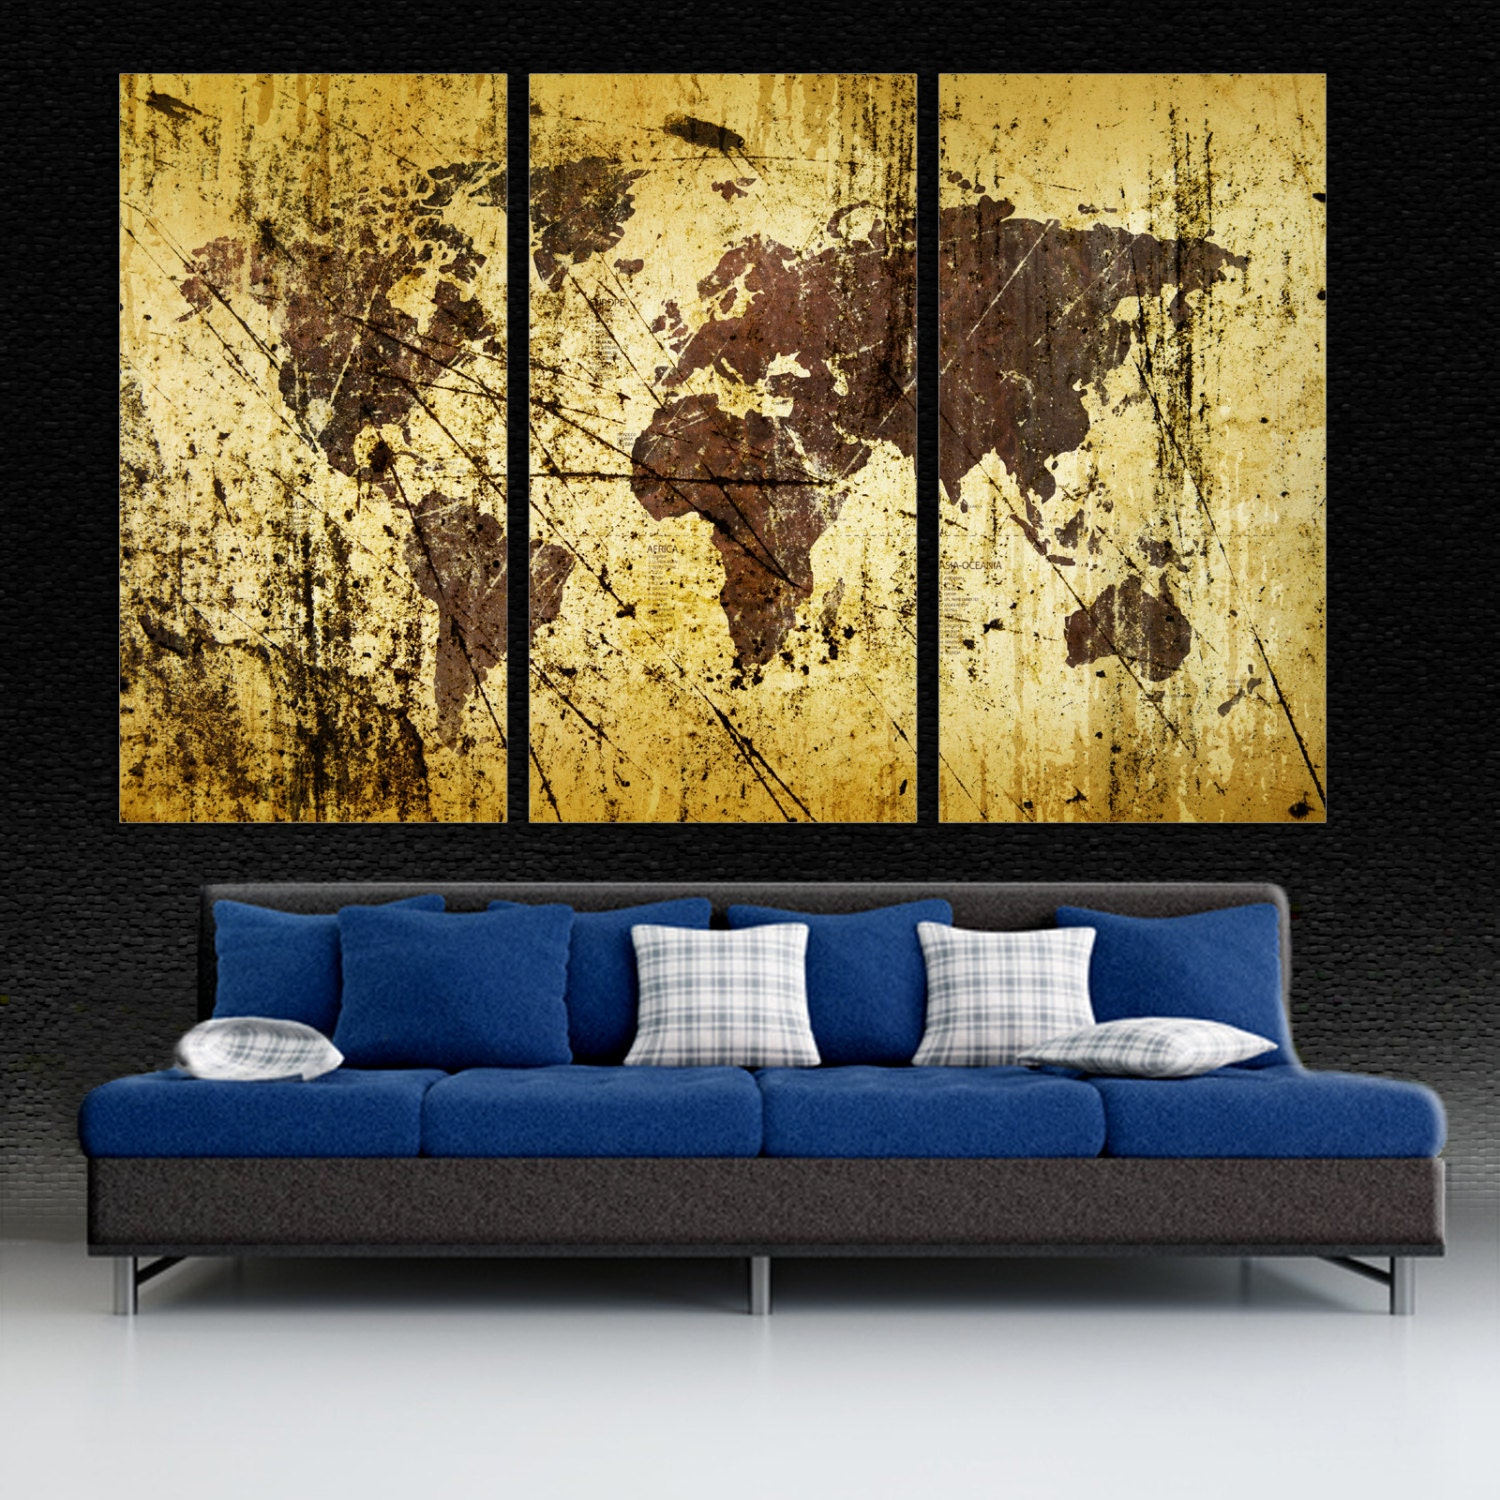 3 panel split abstract world map canvas print 1 5 deep for Interior wall art